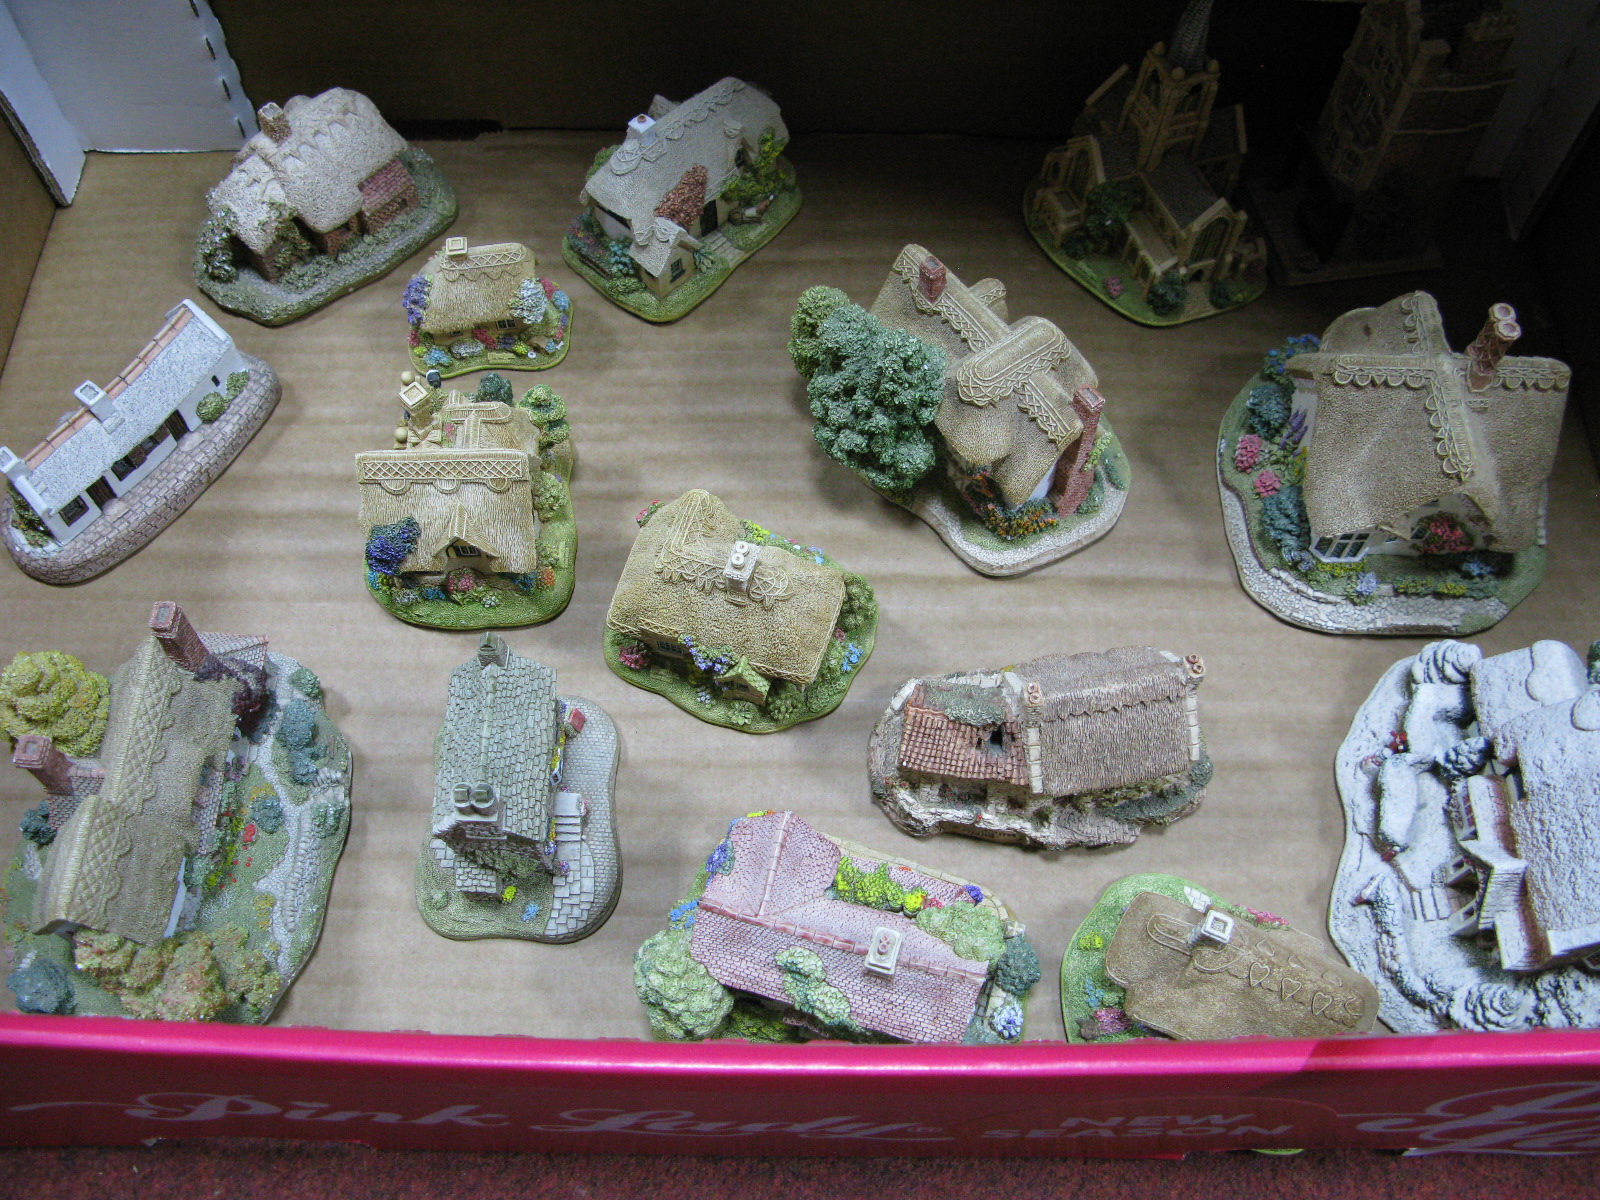 Lot 1118 - Sixteen Lilliput Lane Dwellings, including 'Jeweller', 'Frosty Morning', 'Birthday Party', 'The